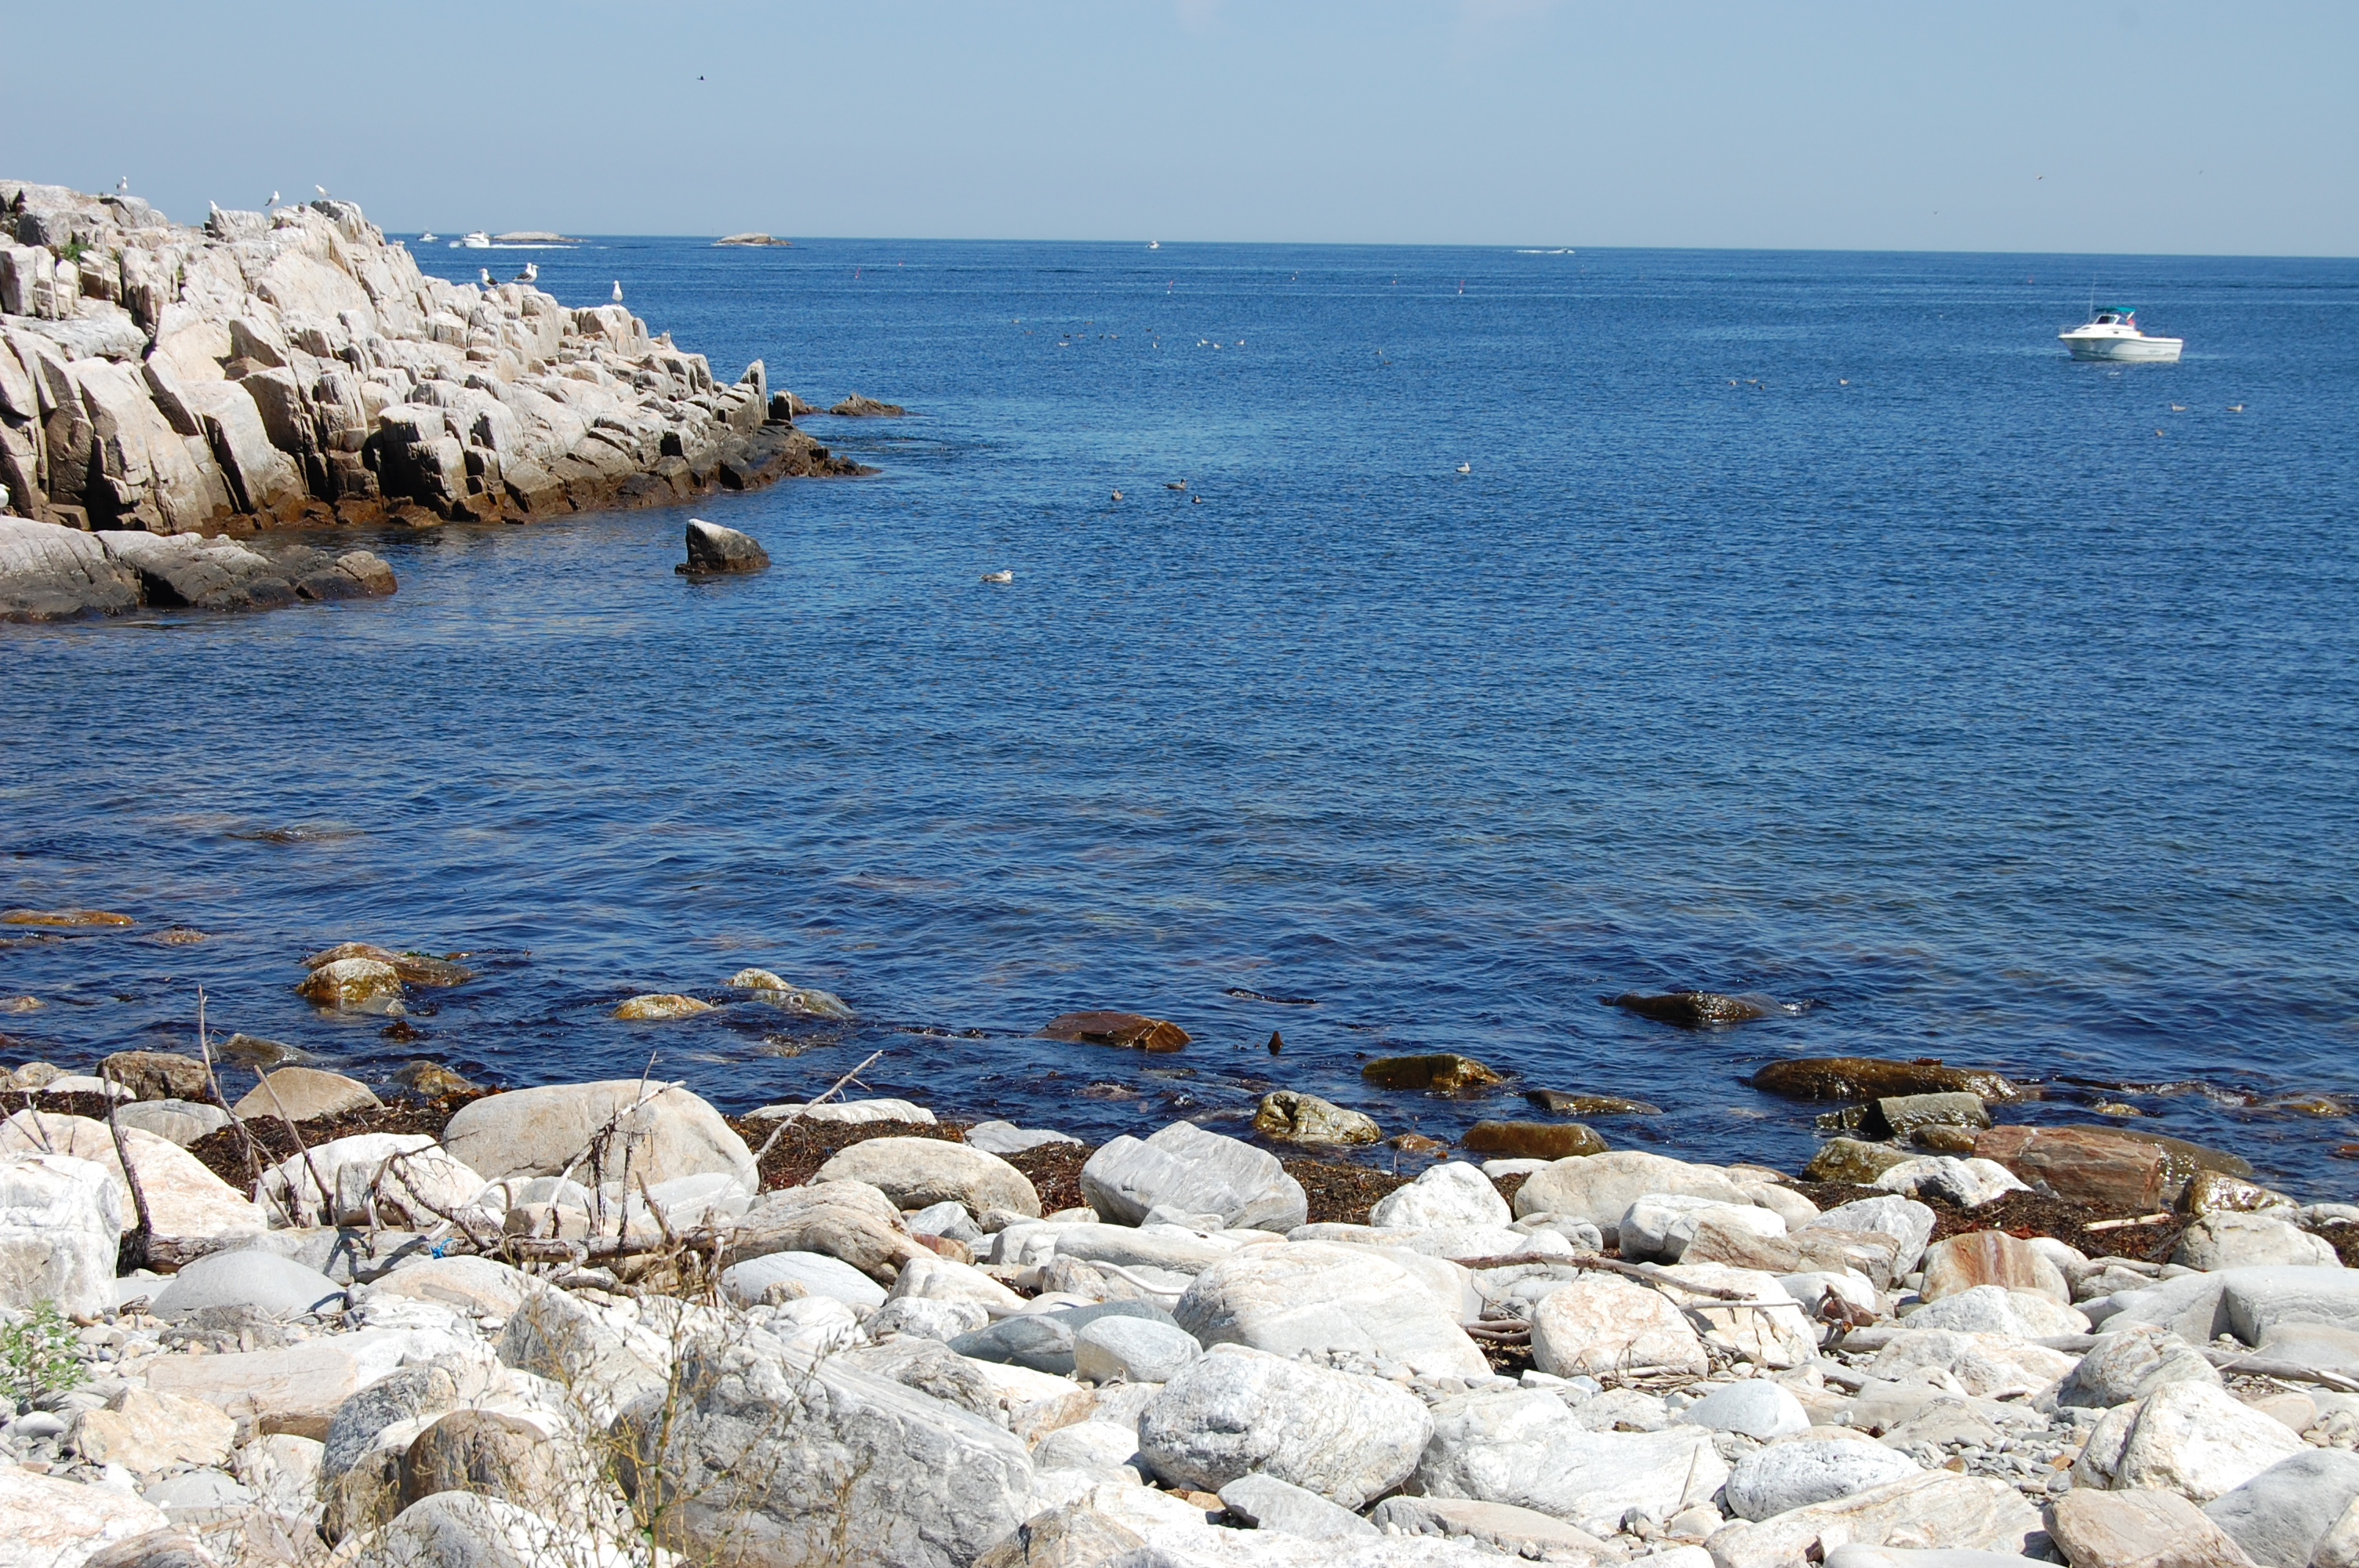 A calm ocean cove on a rocky shoreline with a white boat in the background.